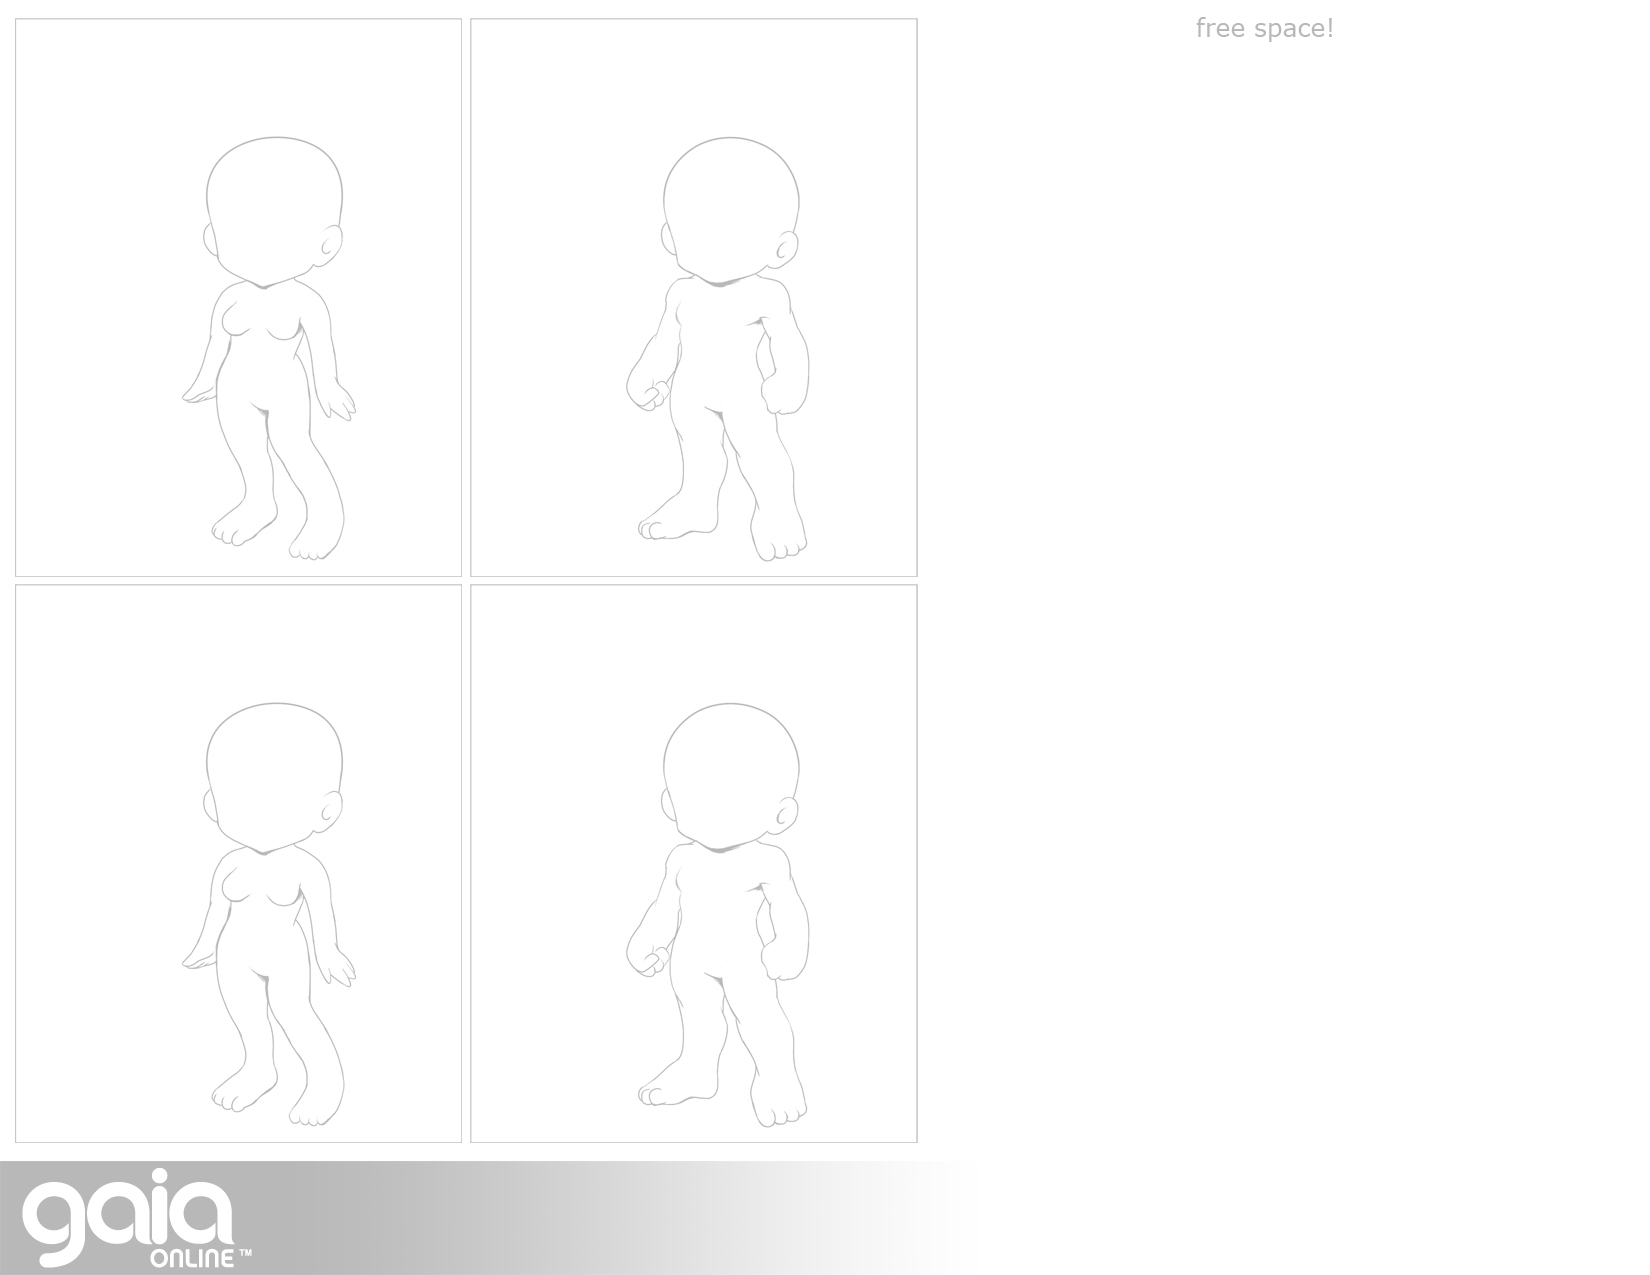 Gaia online official contest rulessupplementary gaiapedia contest 2k12feb29 gaiaonline item design template pronofoot35fo Images